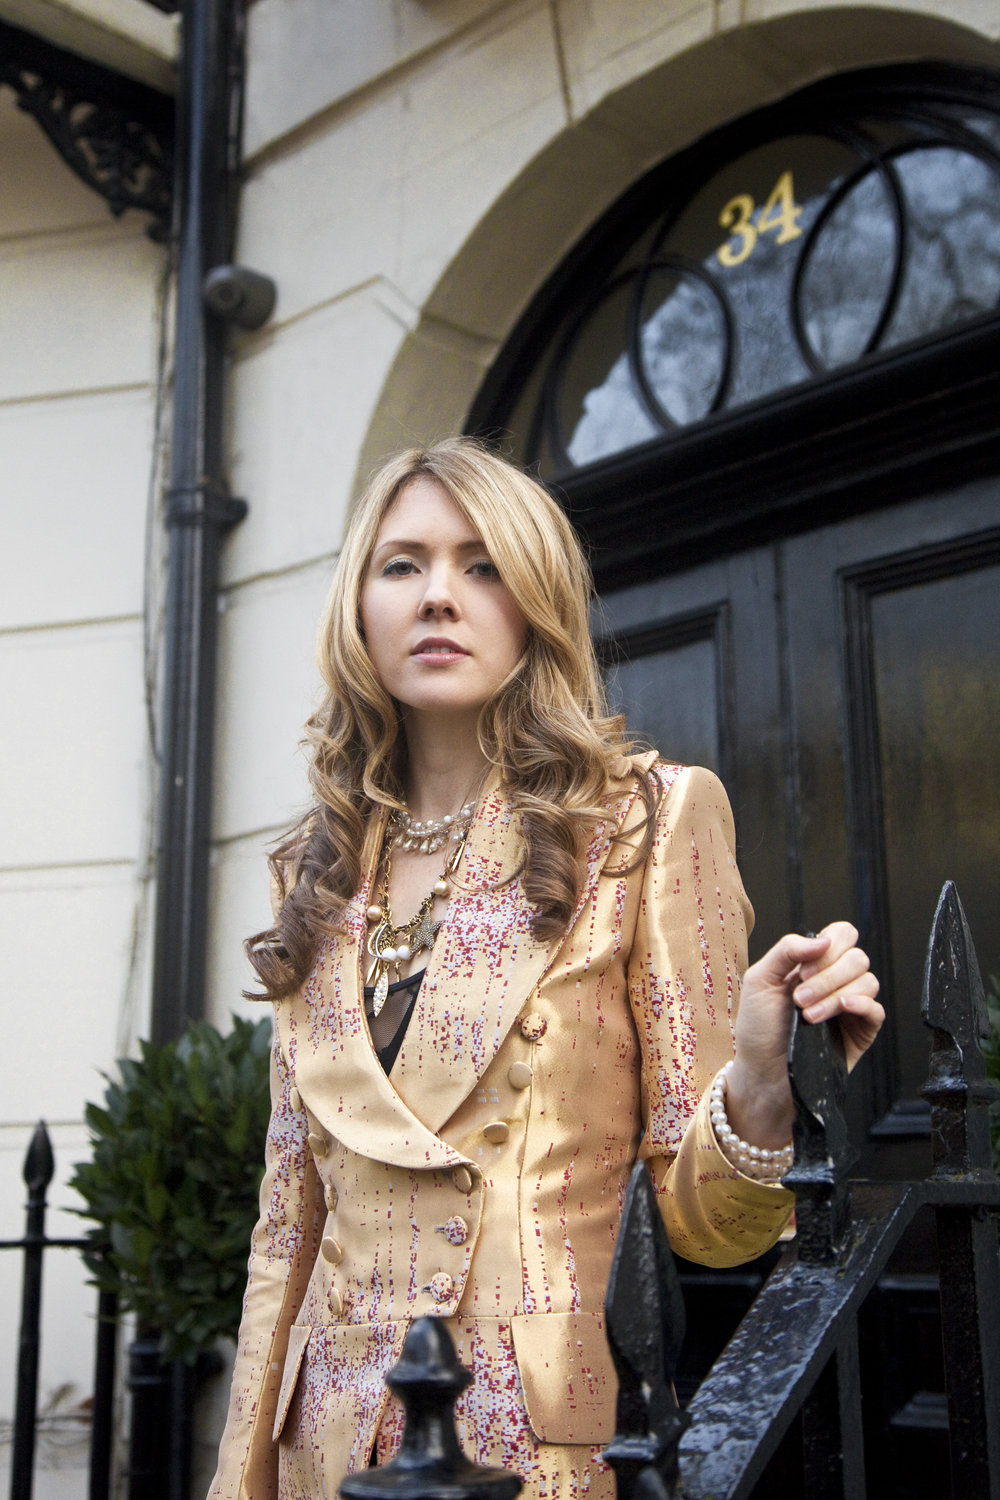 Copy of Beatie Wolfe - 2015 Montagu Suare - in her musical jacket outside 34 Montagu Square by Ollie Smallwood